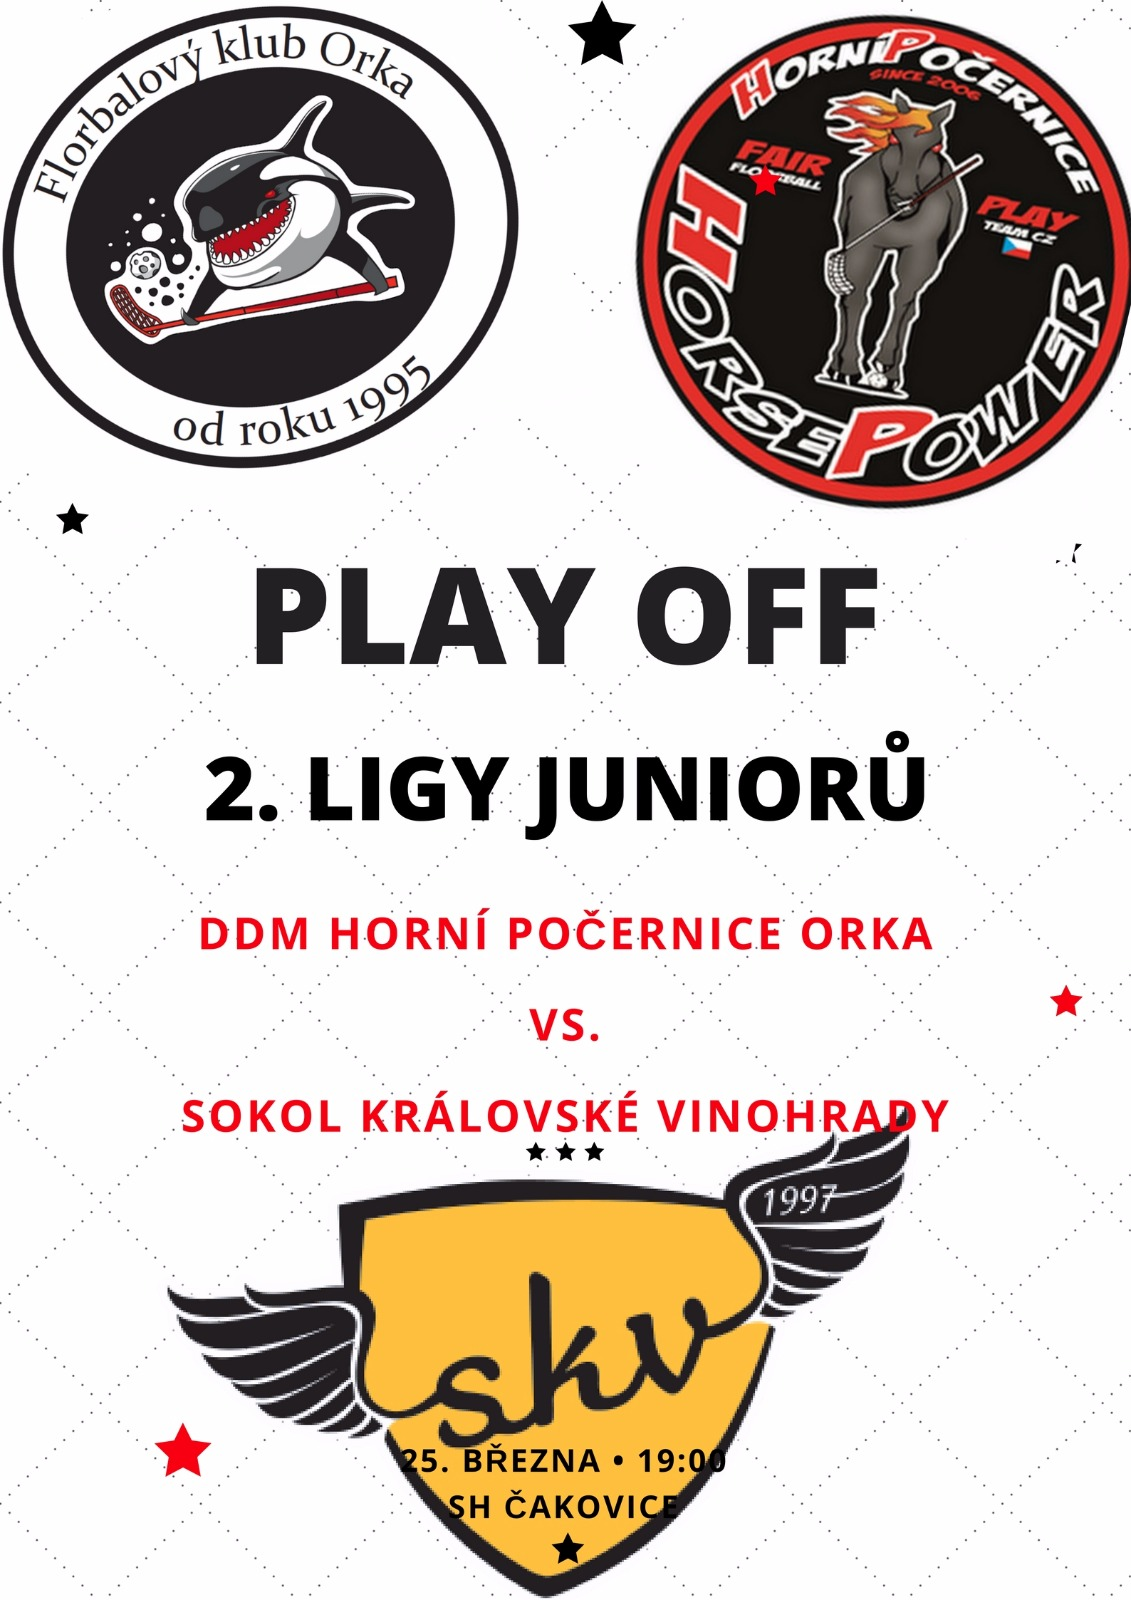 Junioři play-off 2017